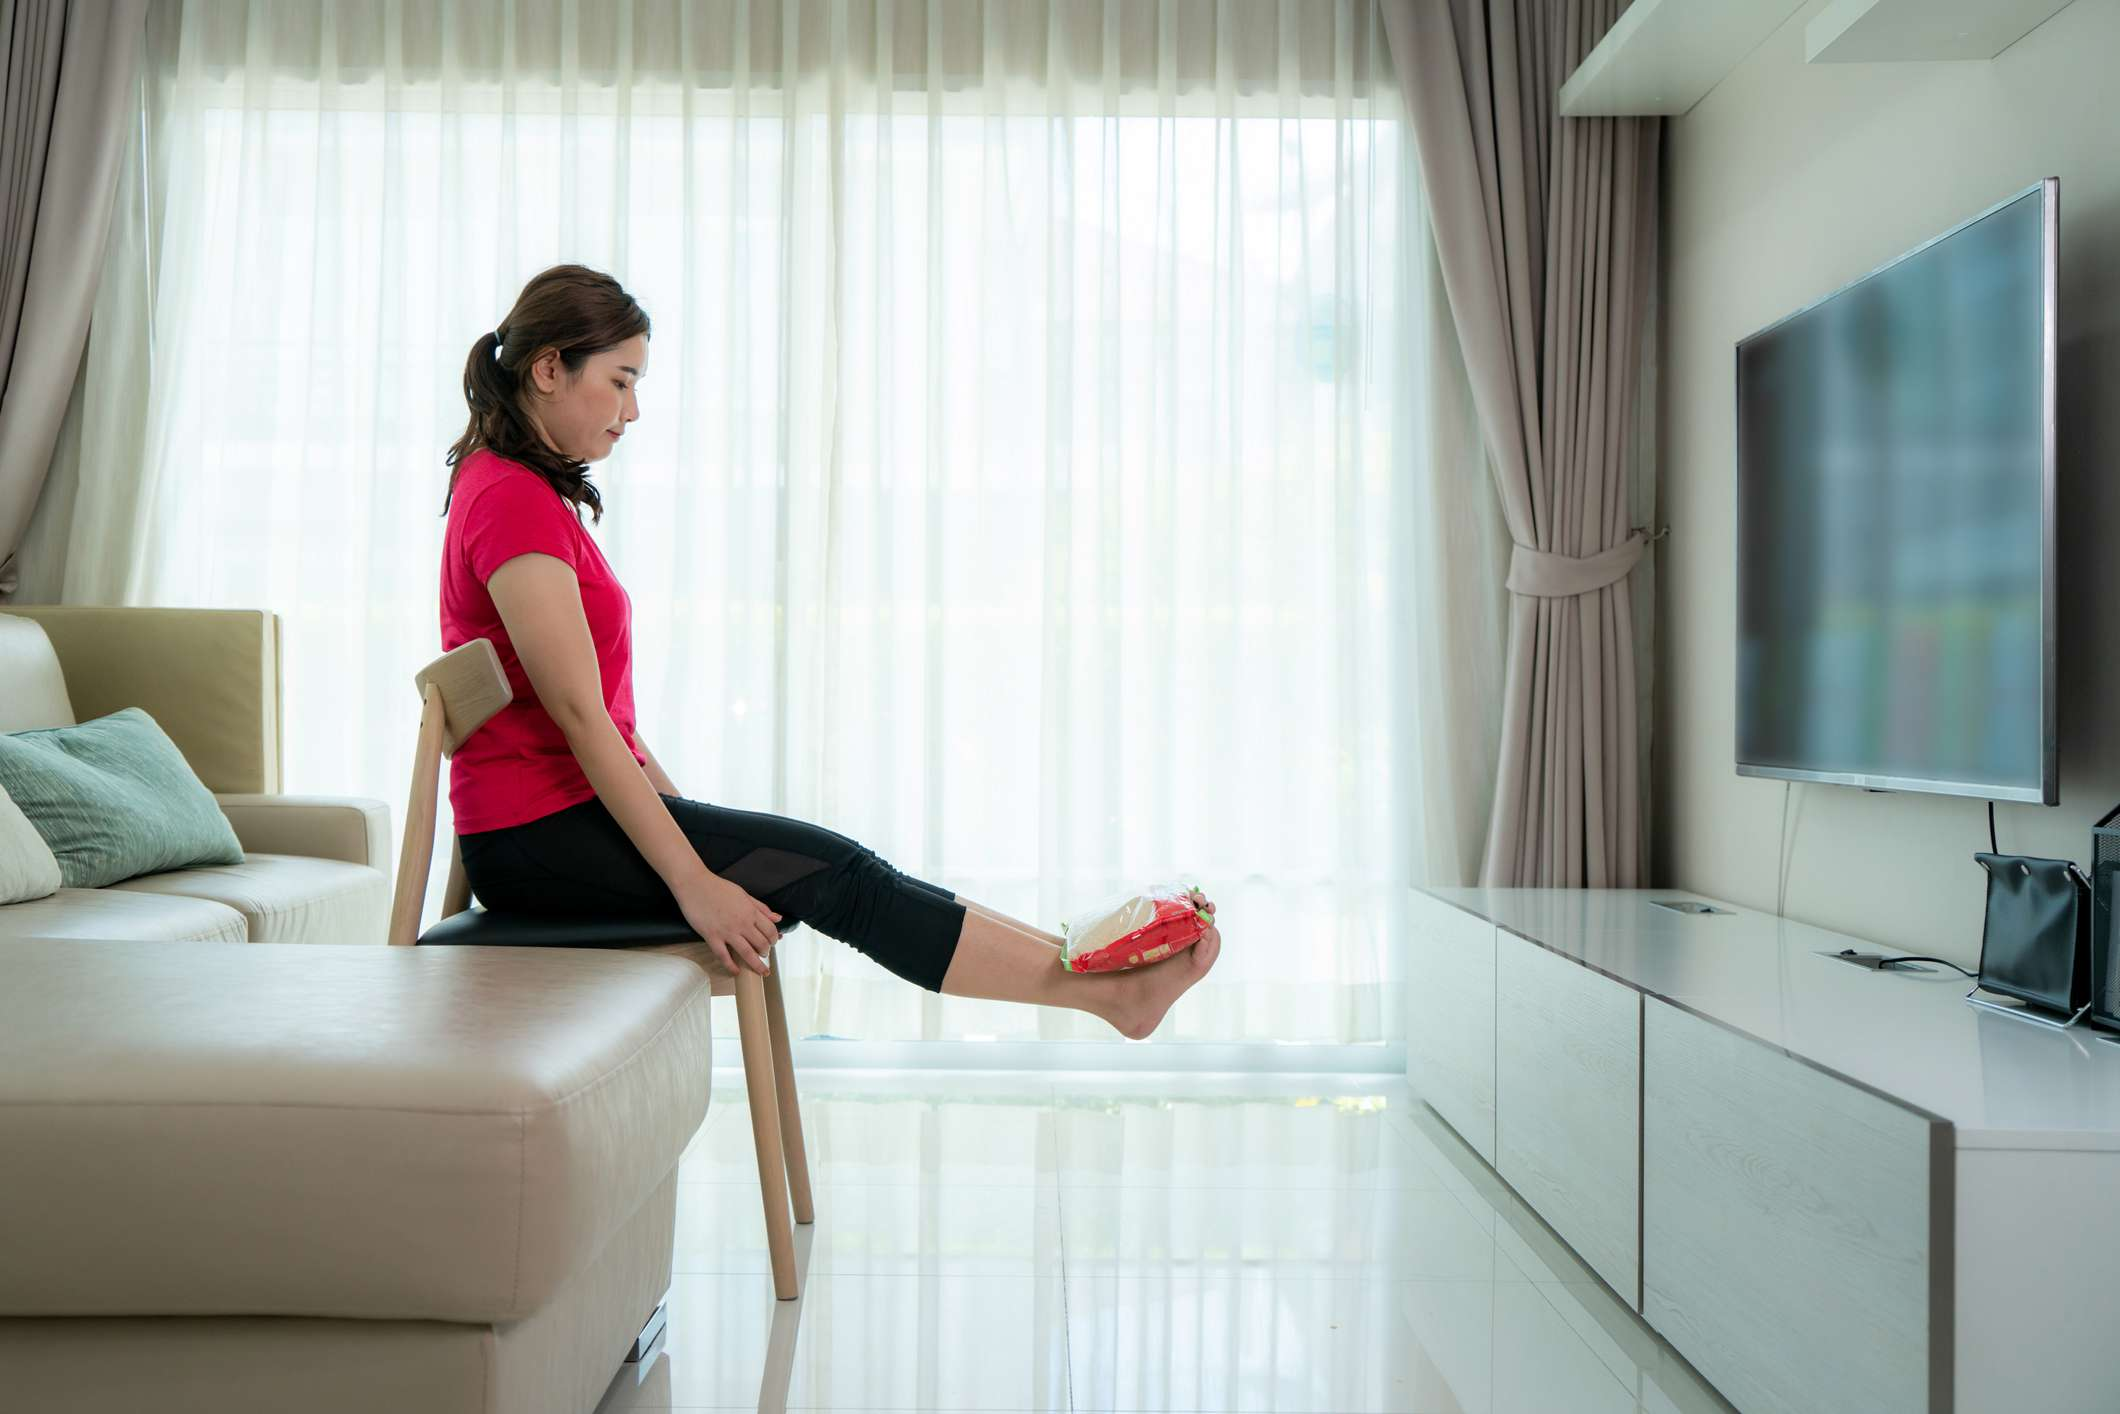 Asian woman finding new ways to use everyday objects around the home as substitutes for her regular exercise equipment she using Leg lifts with ankle weights fashioned out of bags of rice at home.